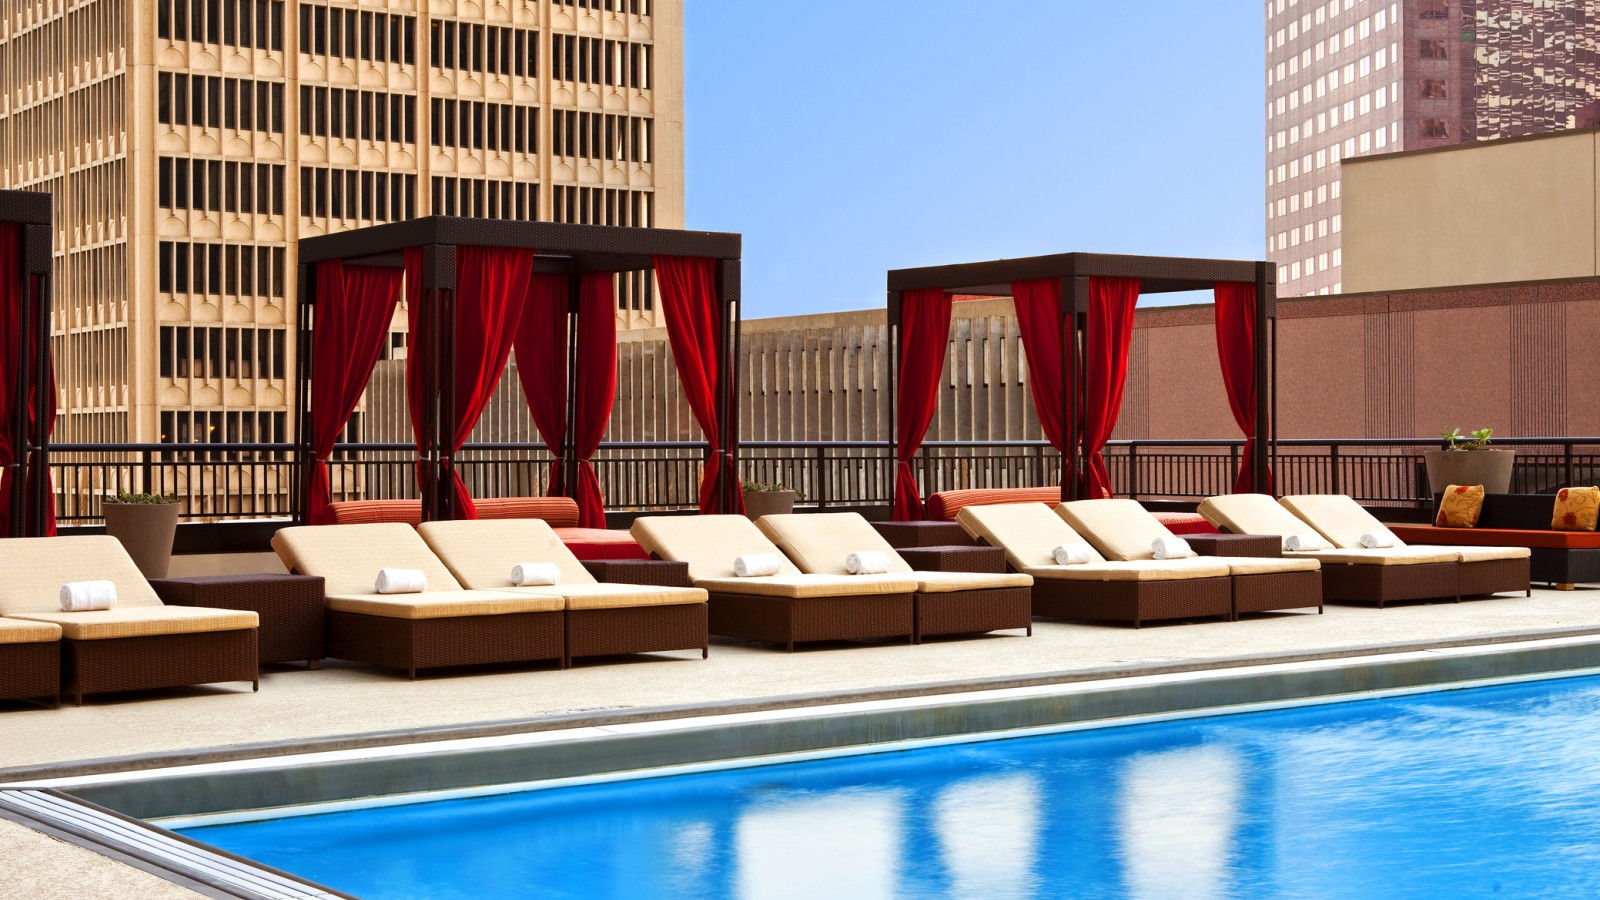 Downtown Dallas Venues - Pool